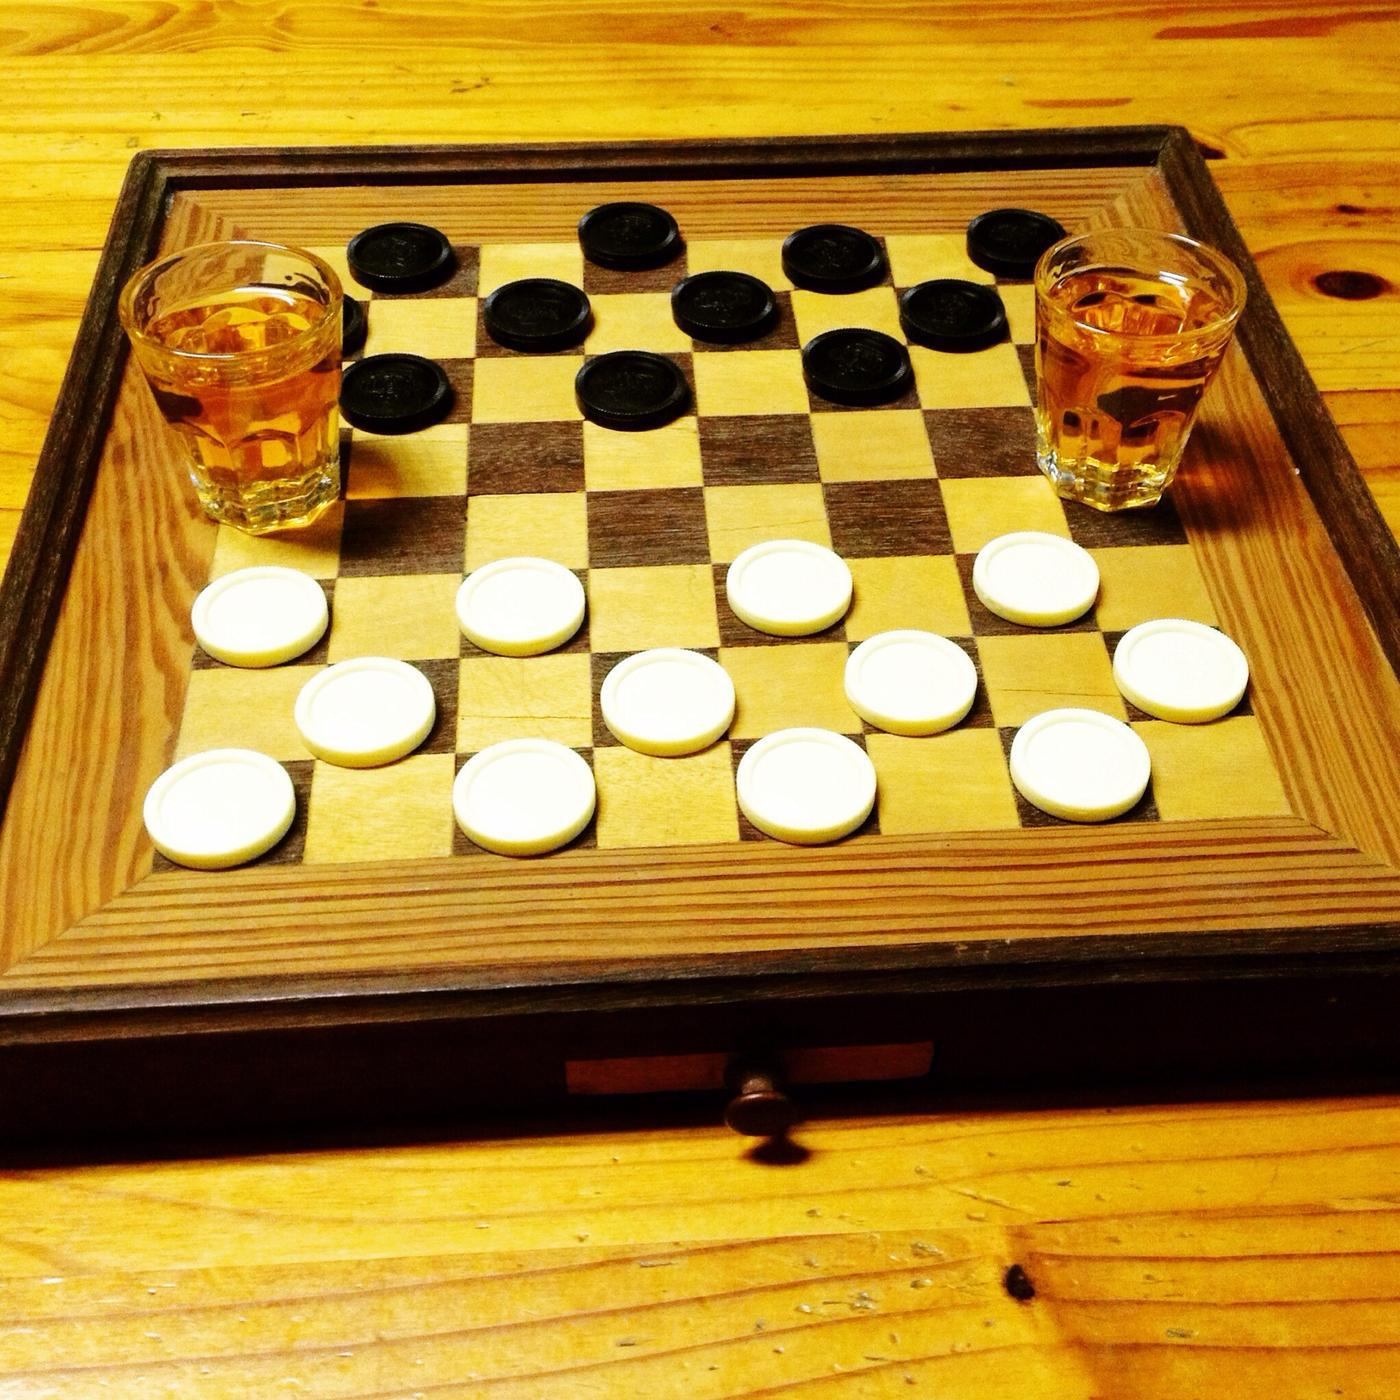 11 of the best board games to make into drinking games